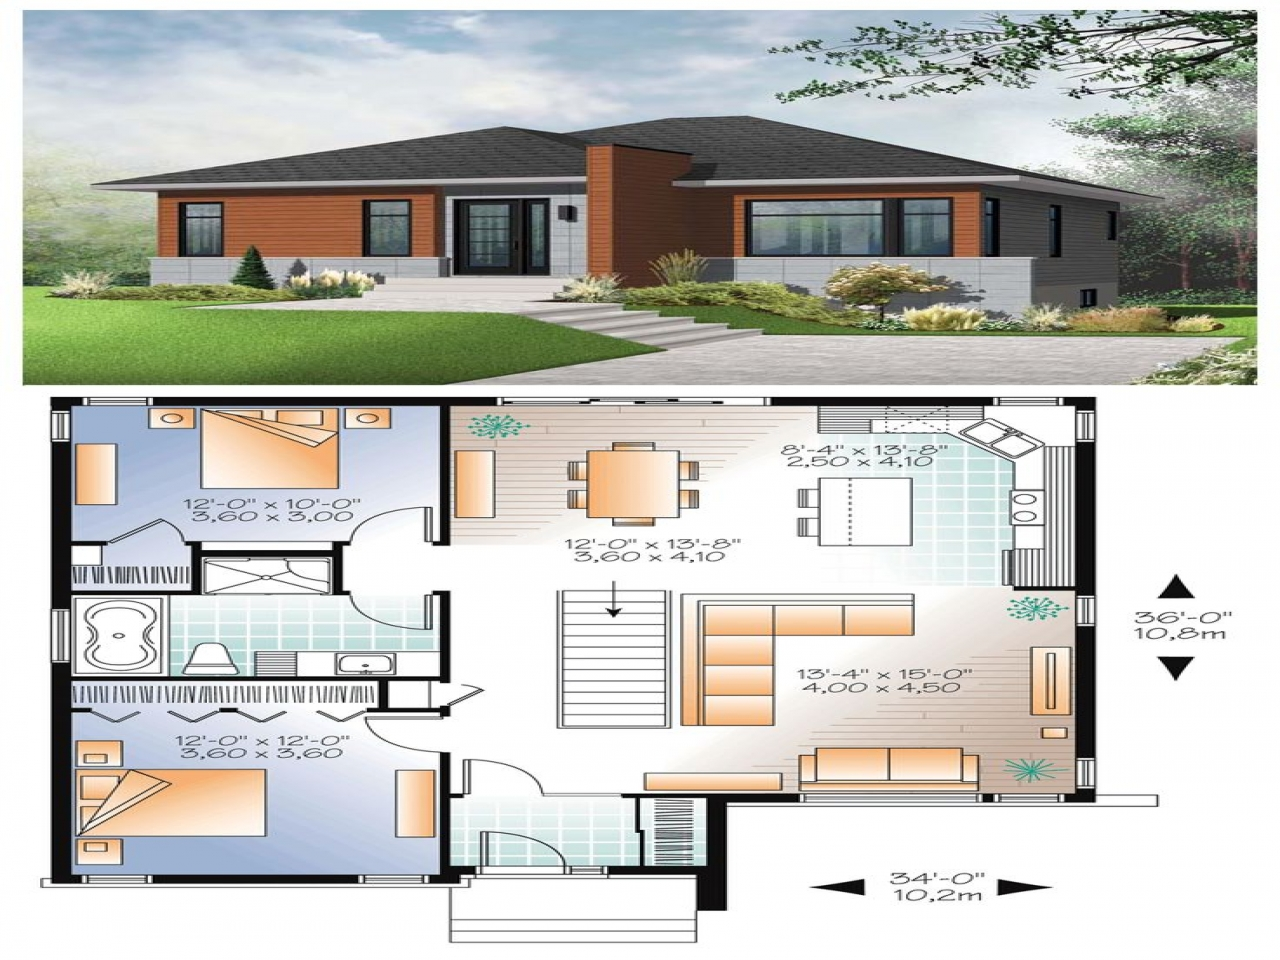 Modern small house plans modern contemporary house plans Simple modern house plans